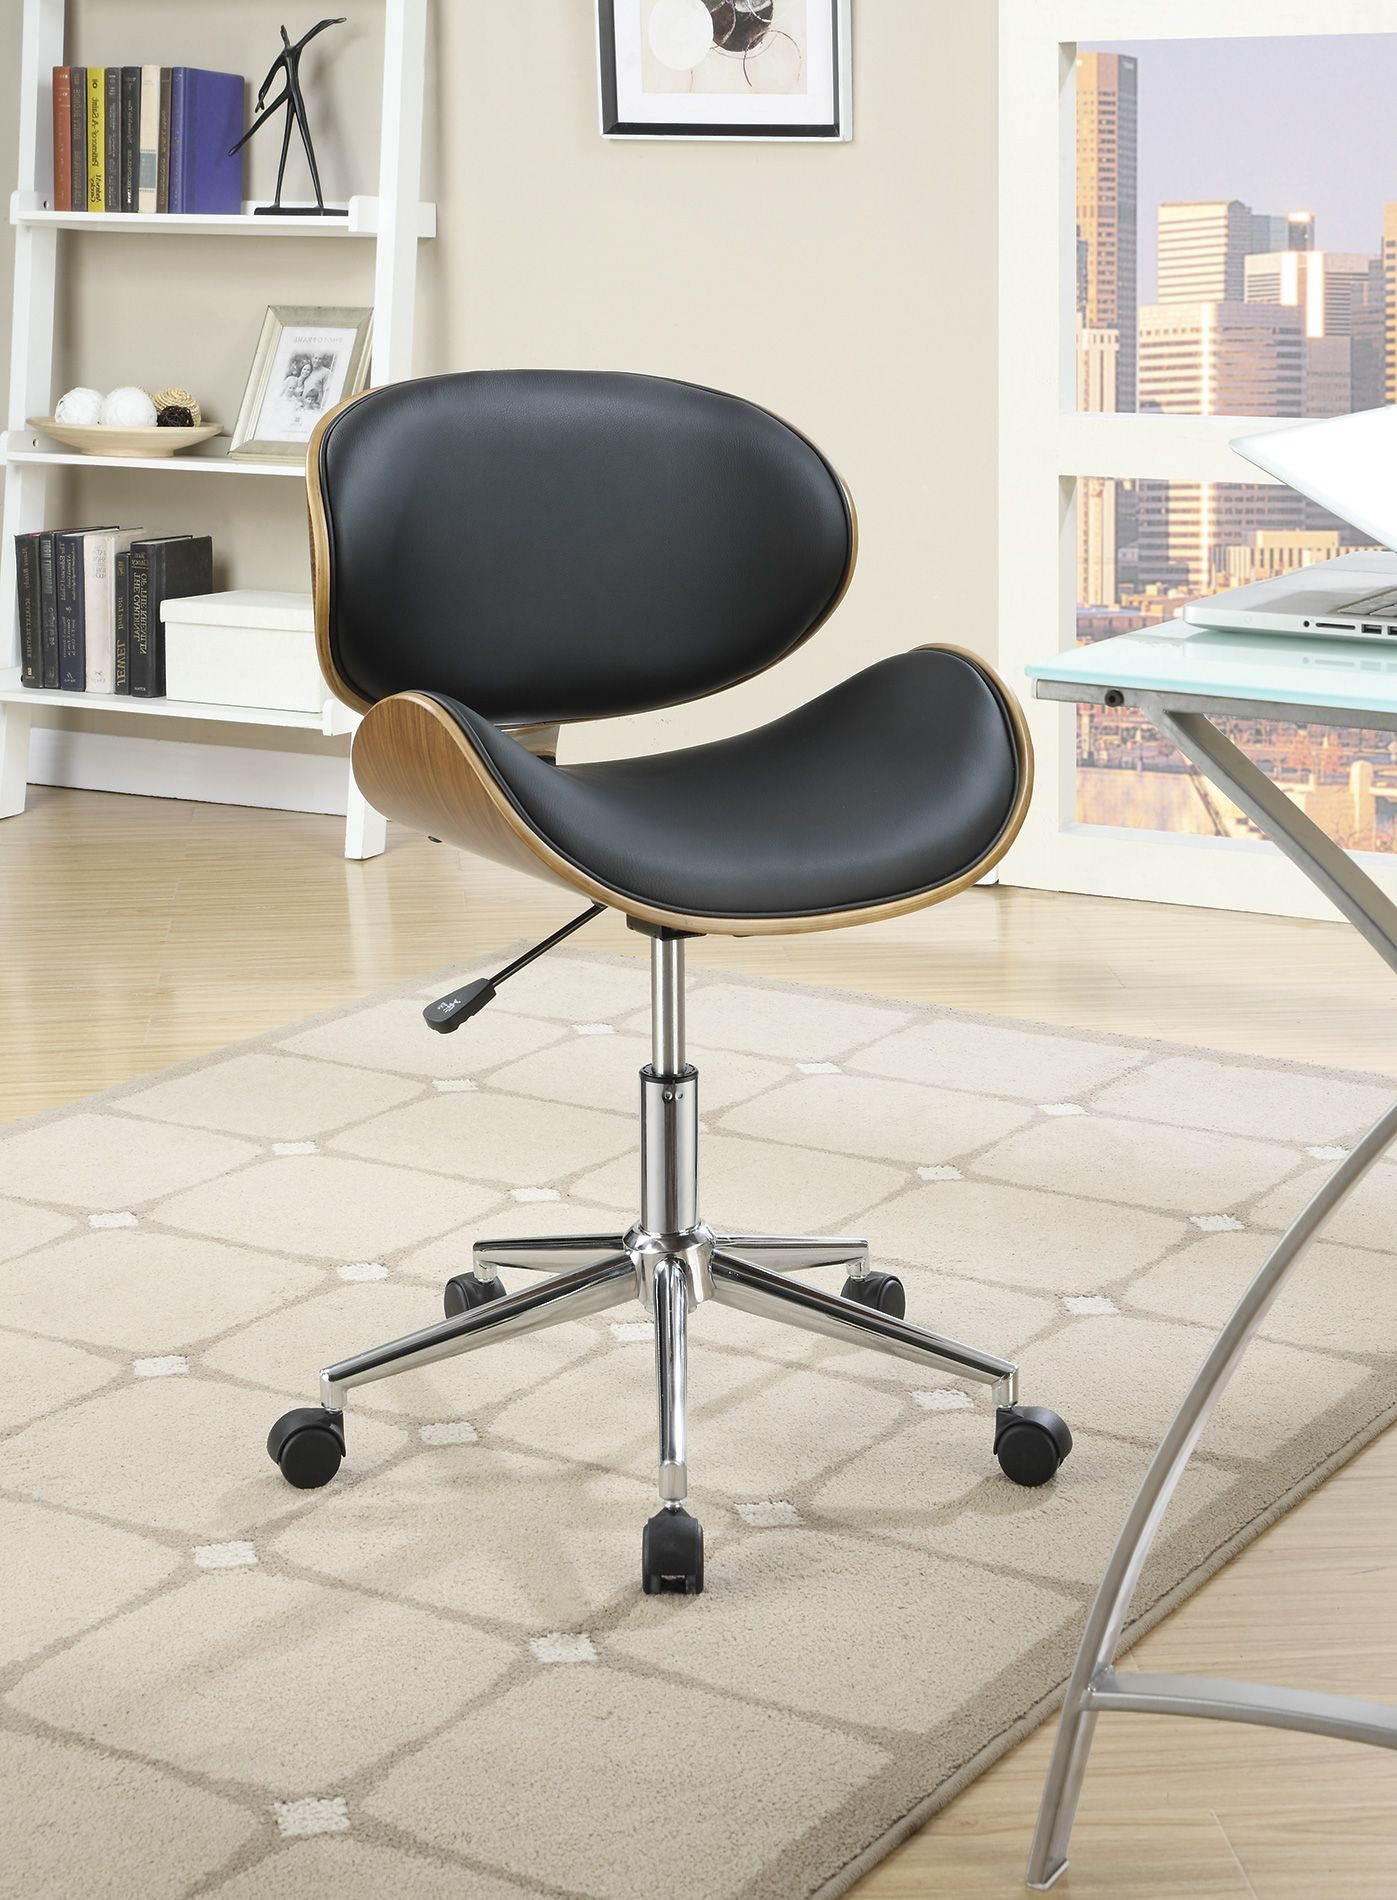 800614 black office chair from coaster 800614 coleman furniture